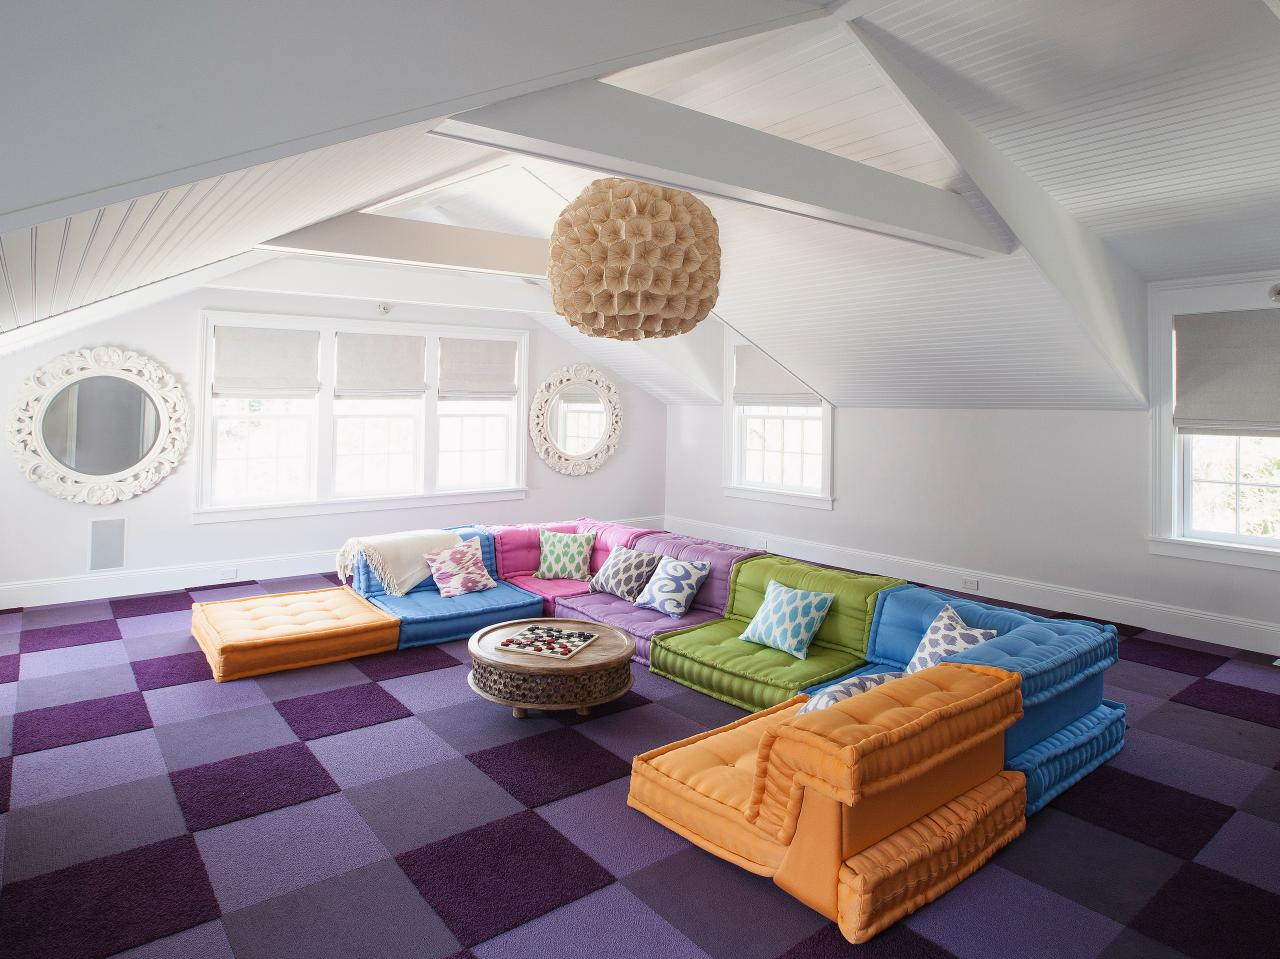 Attic Space Ideas Attic Living Room With All Wooden Ceiling